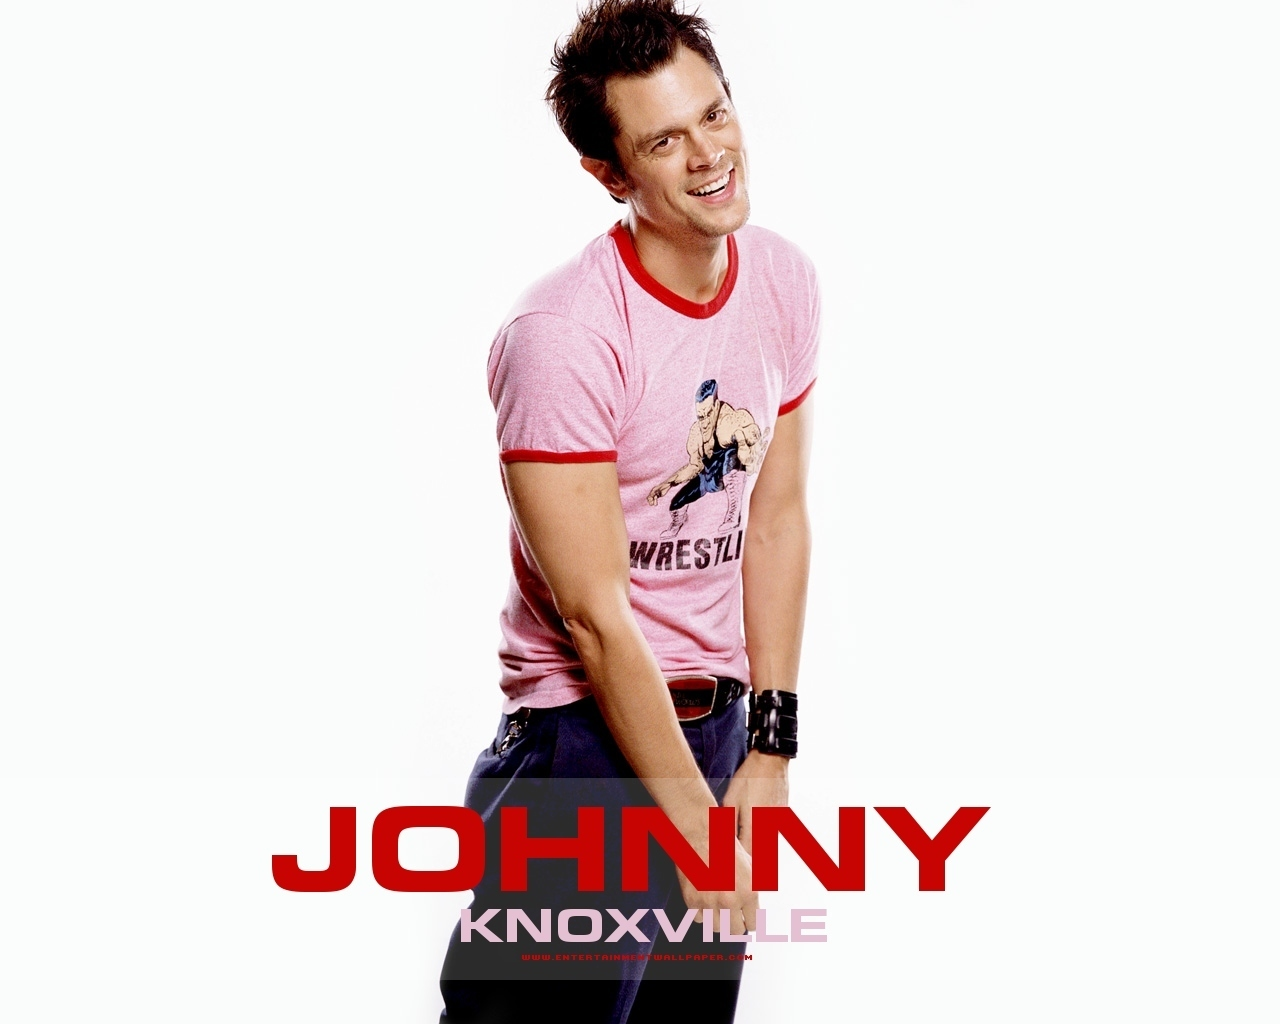 1280x1024 - Johnny Knoxville Wallpapers 14